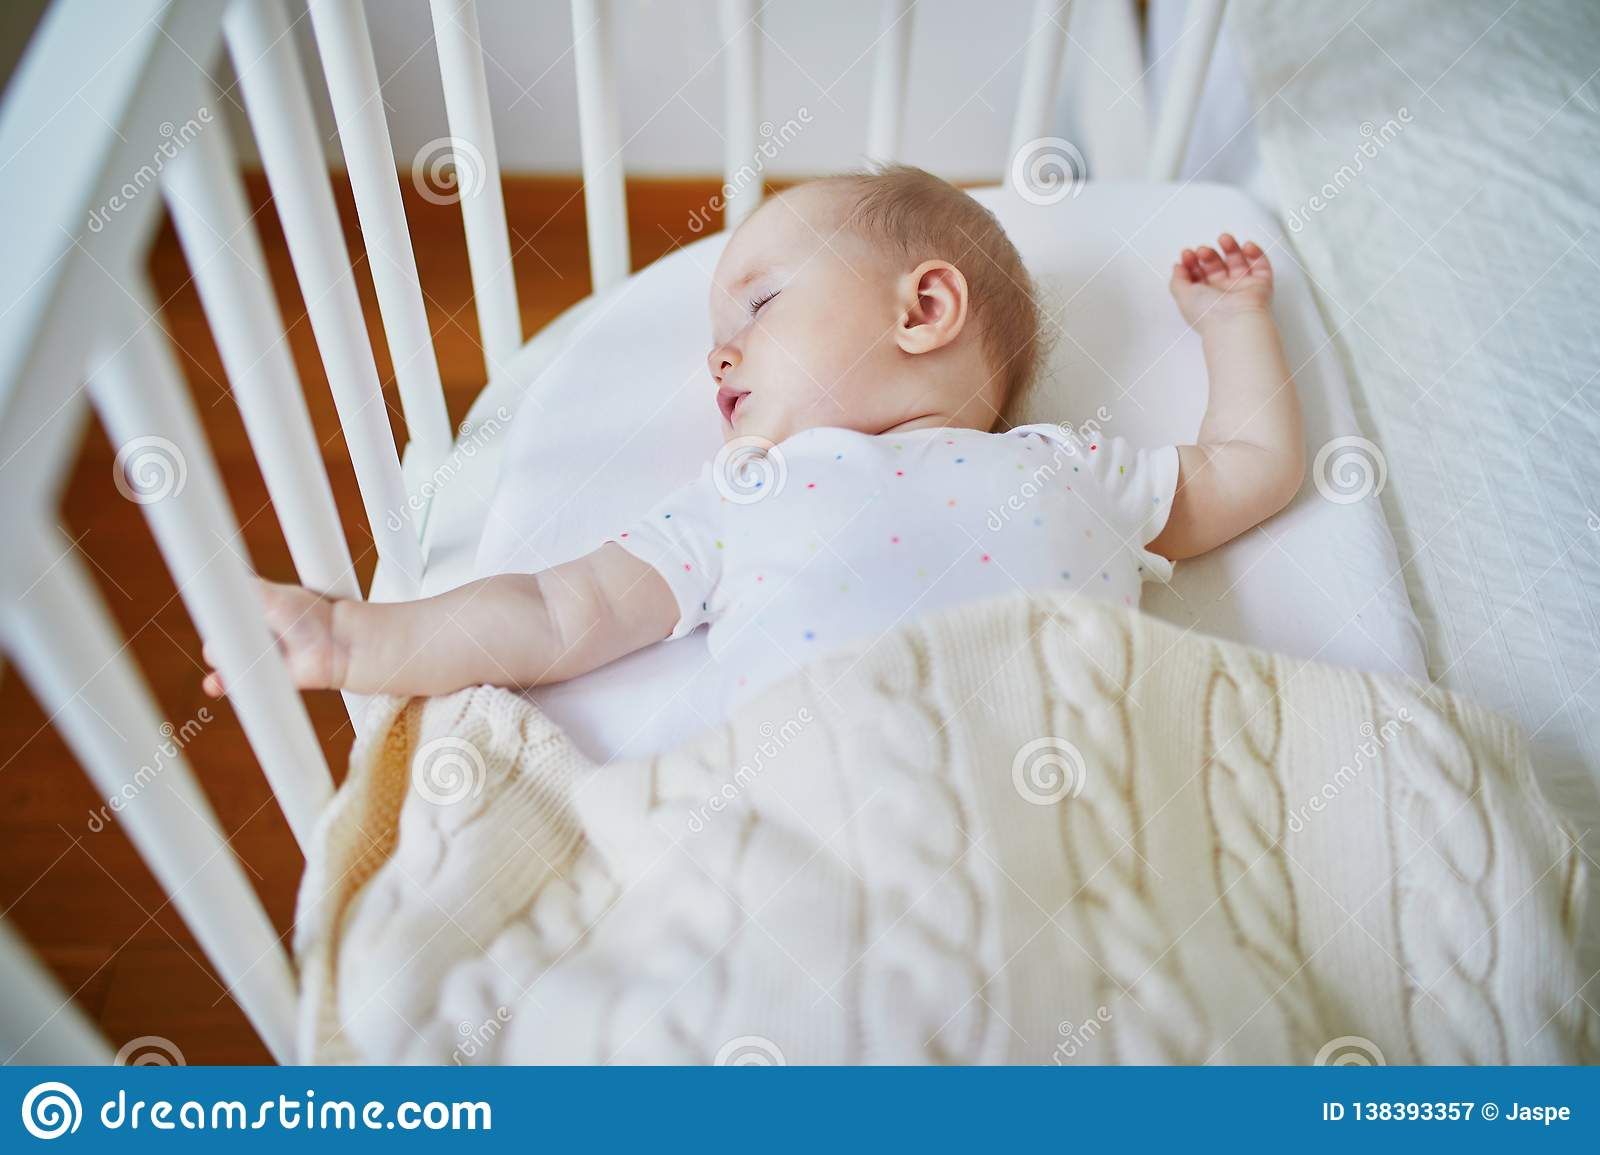 Baby Sleeping In Co-sleeper Crib Attached To Parents ` Bed ...